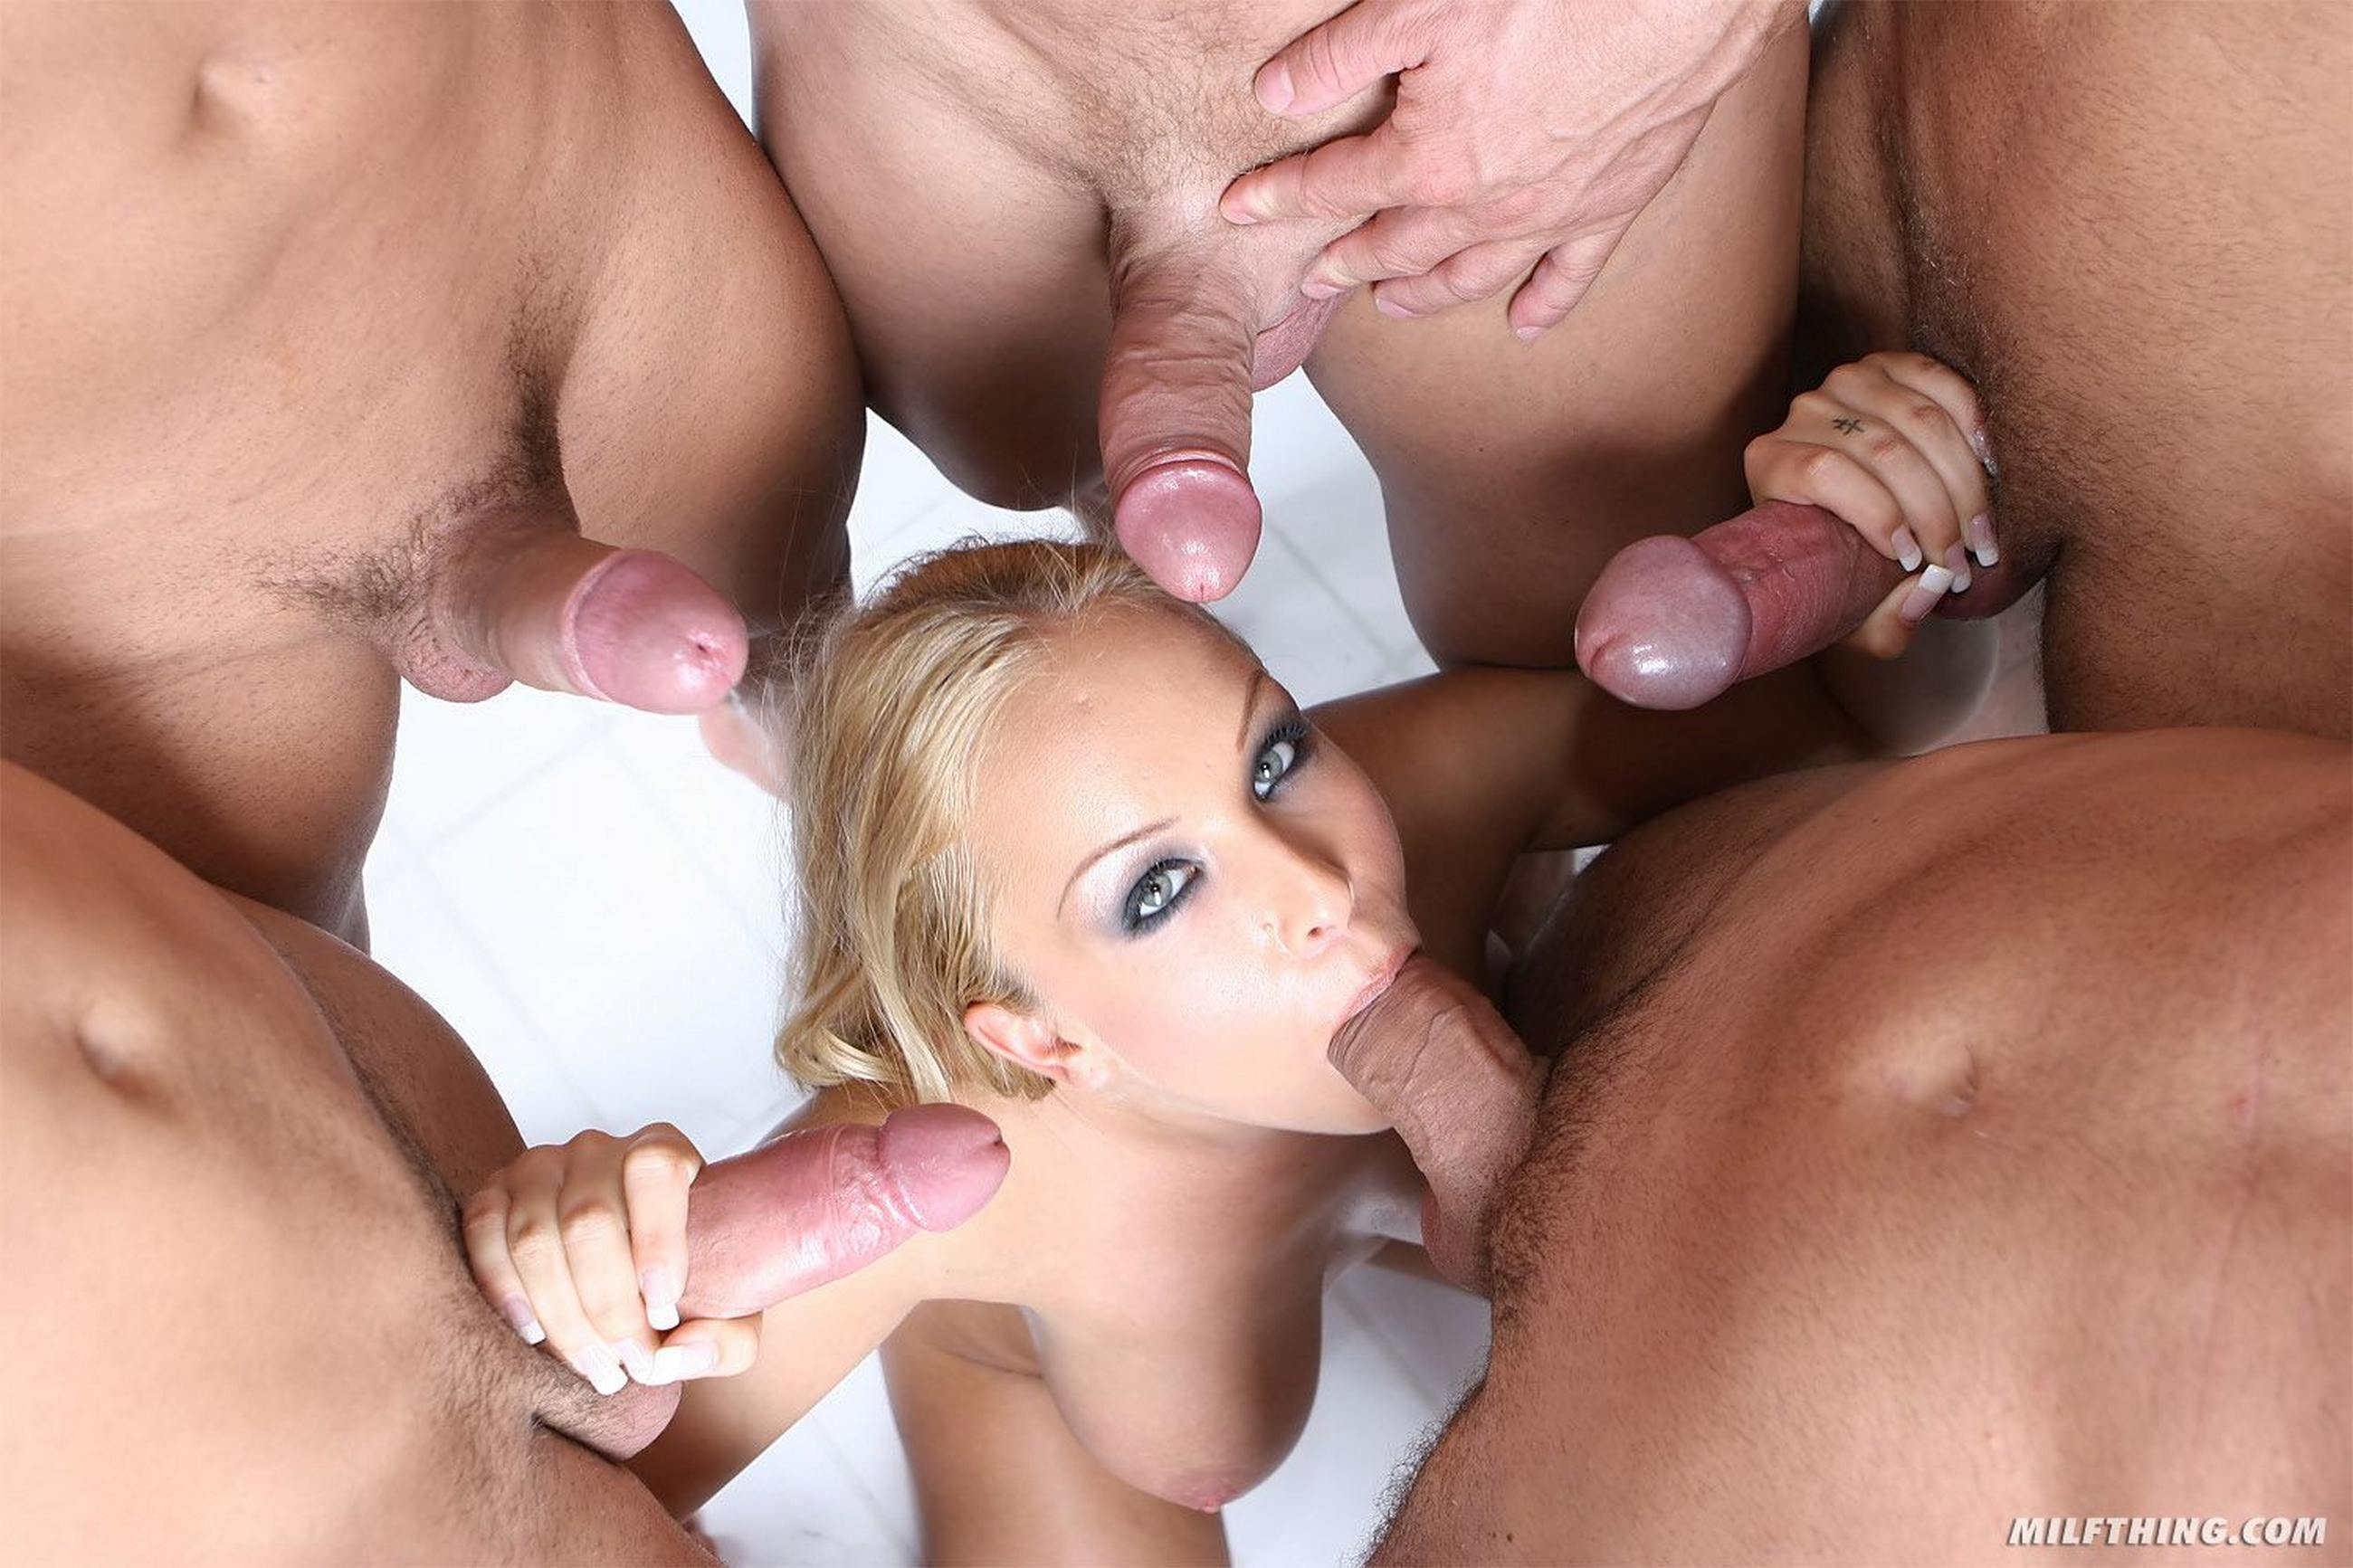 wallpaper gang bang cock sucking big dicks blowjob